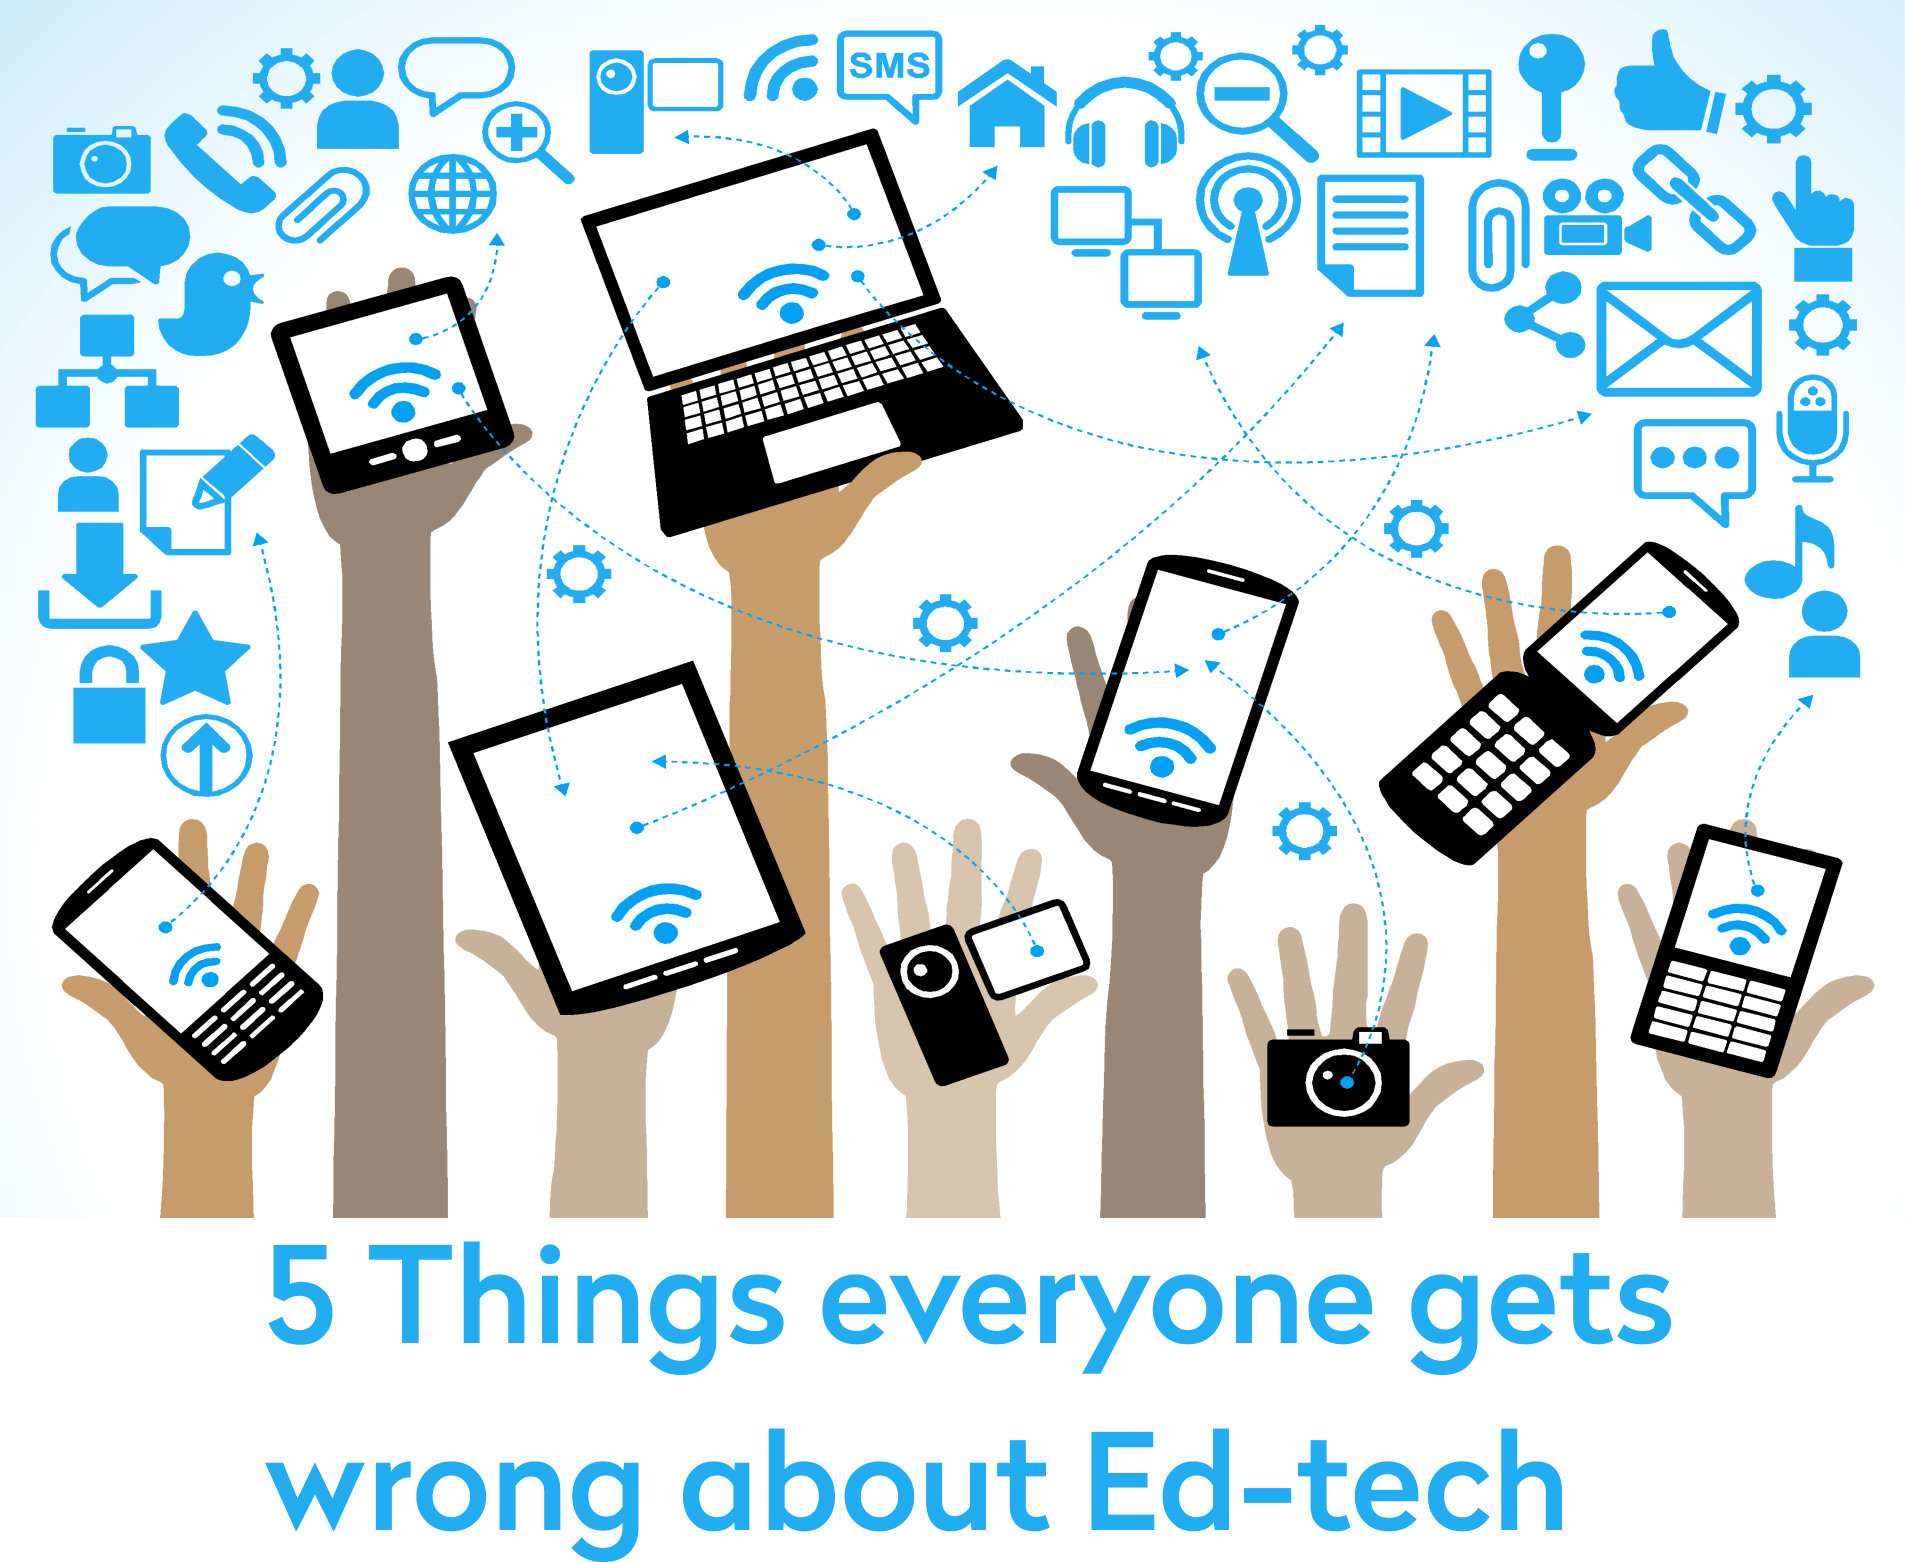 5 Things Everyone Gets Wrong about Ed-tech